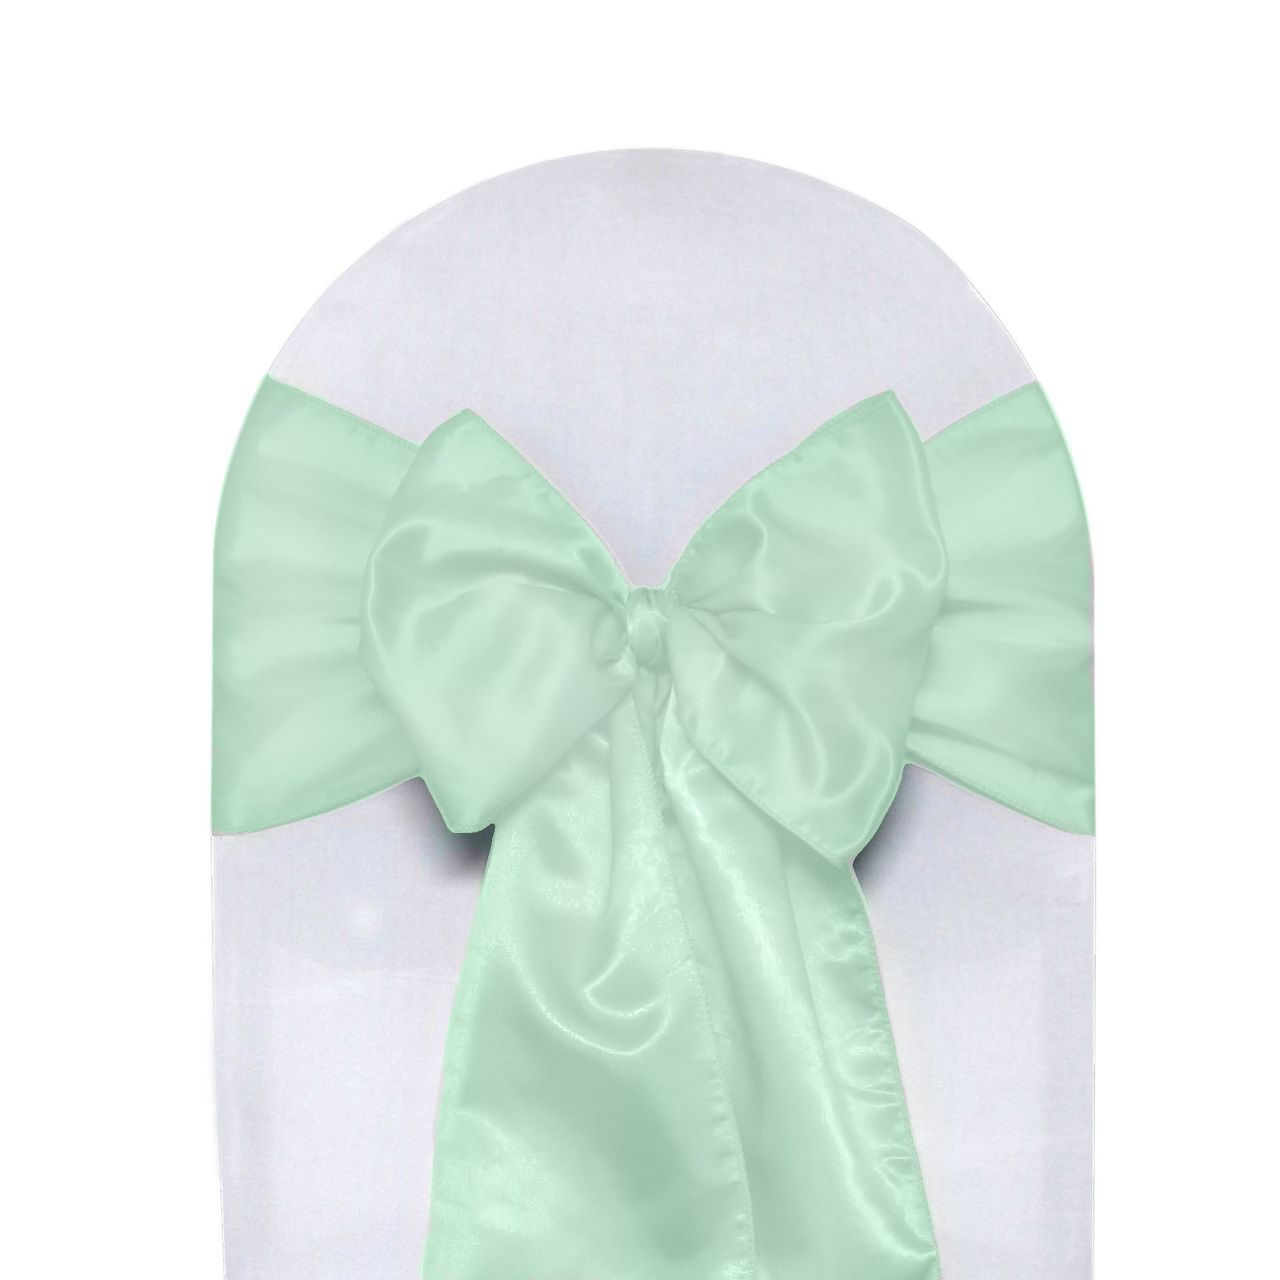 10 Pack Satin Sashes Mint Green Satin Sash Wedding Chair Sashes Chair Covers Wedding